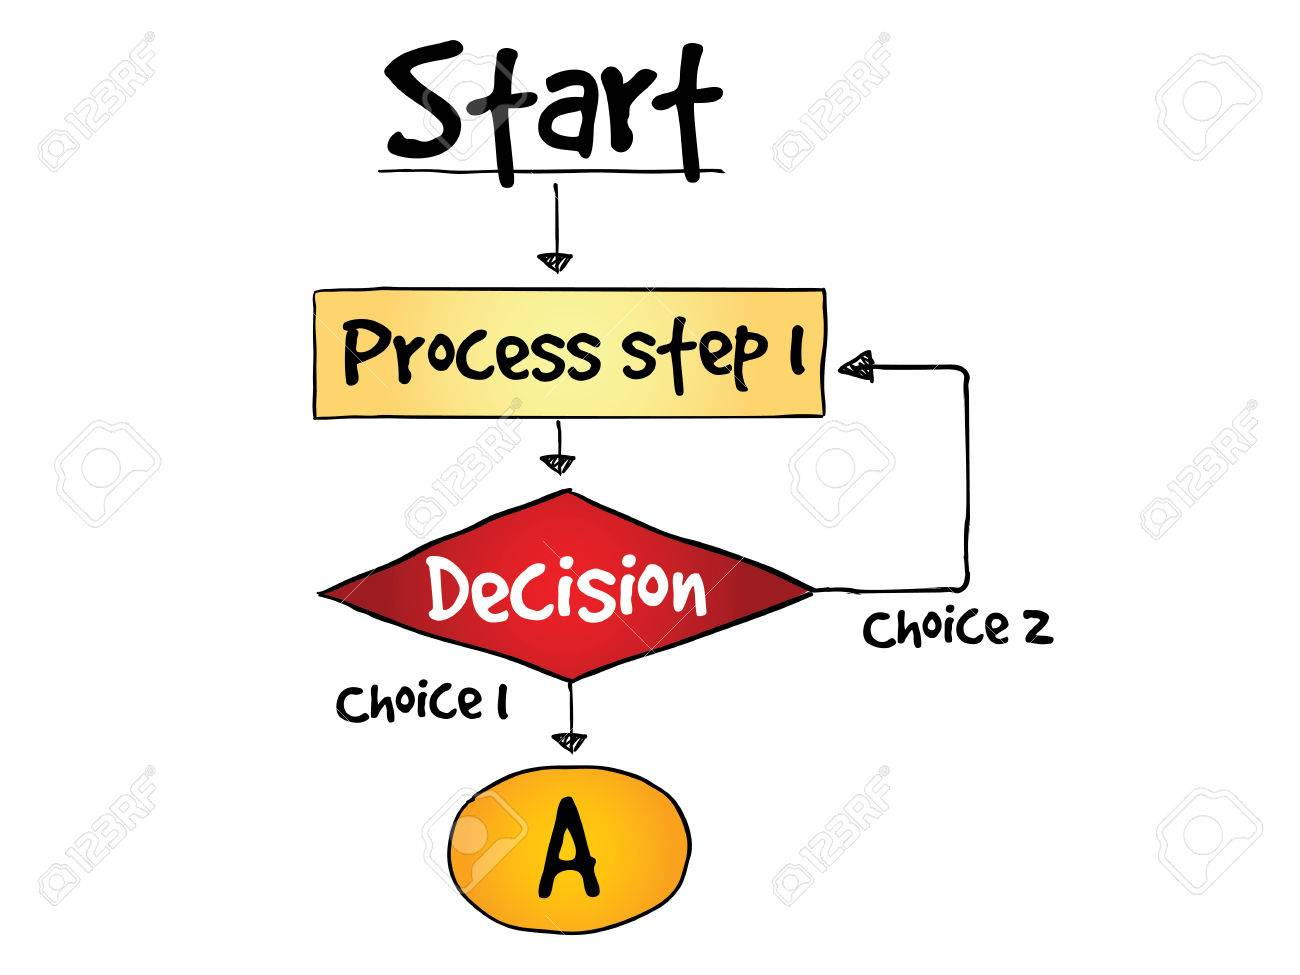 Decision making flow chart process business concept royalty free decision making flow chart process business concept stock vector 37226364 nvjuhfo Images